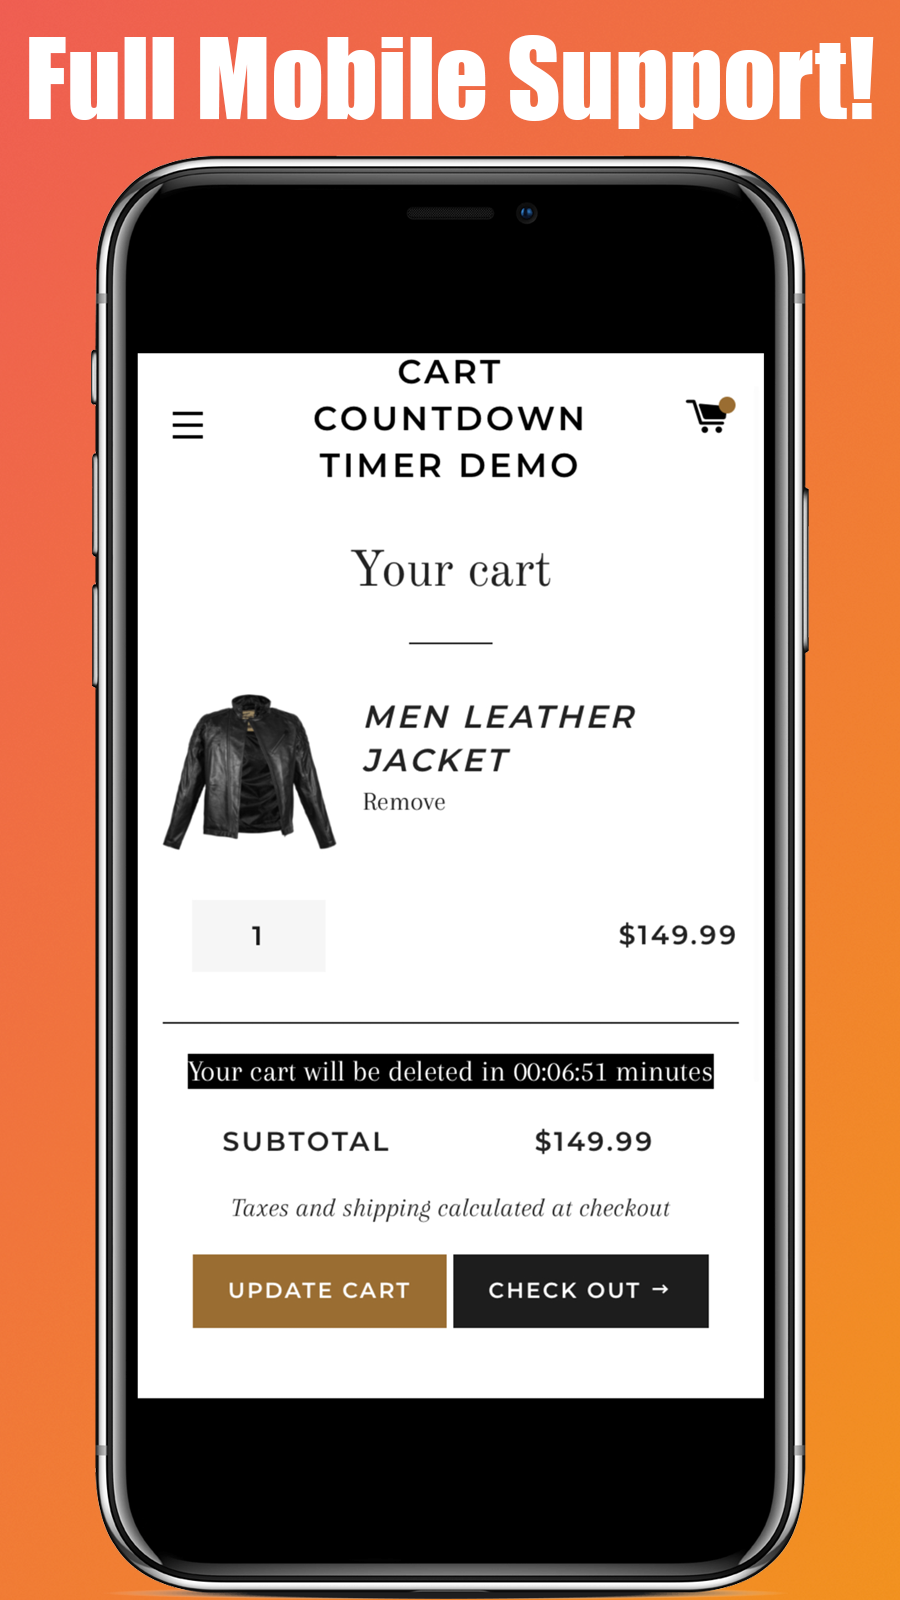 The countdown timer app in action in a mobile version of a store